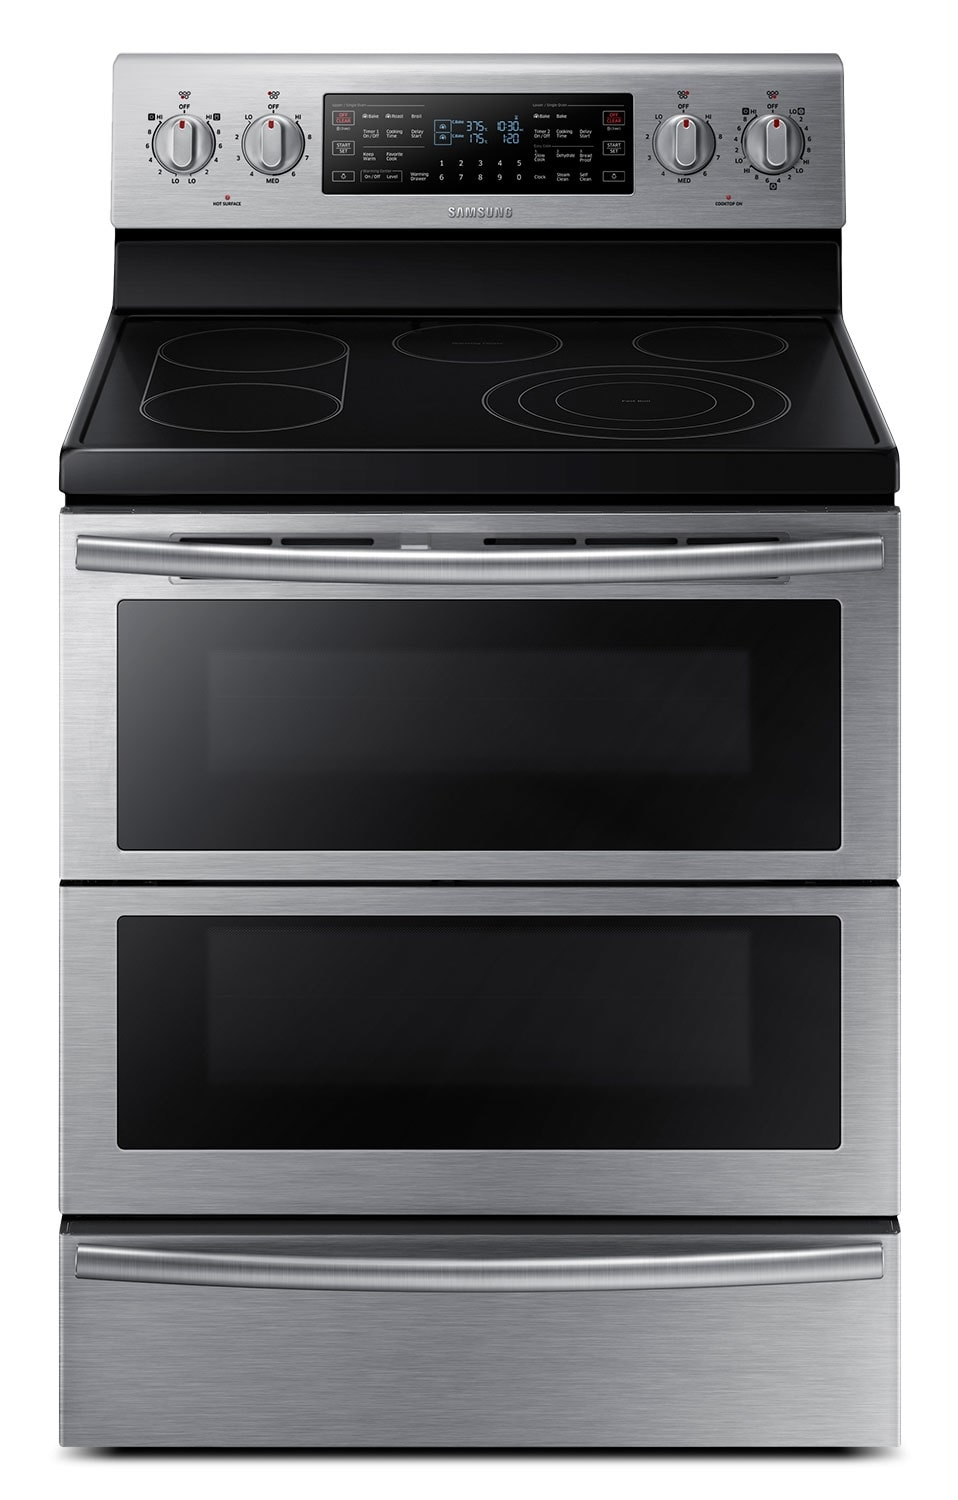 Cooking Products - Samsung Stainless Steel Freestanding Electric Dual Convection Range (5.9 Cu. Ft.) - NE59J7850WS/AC